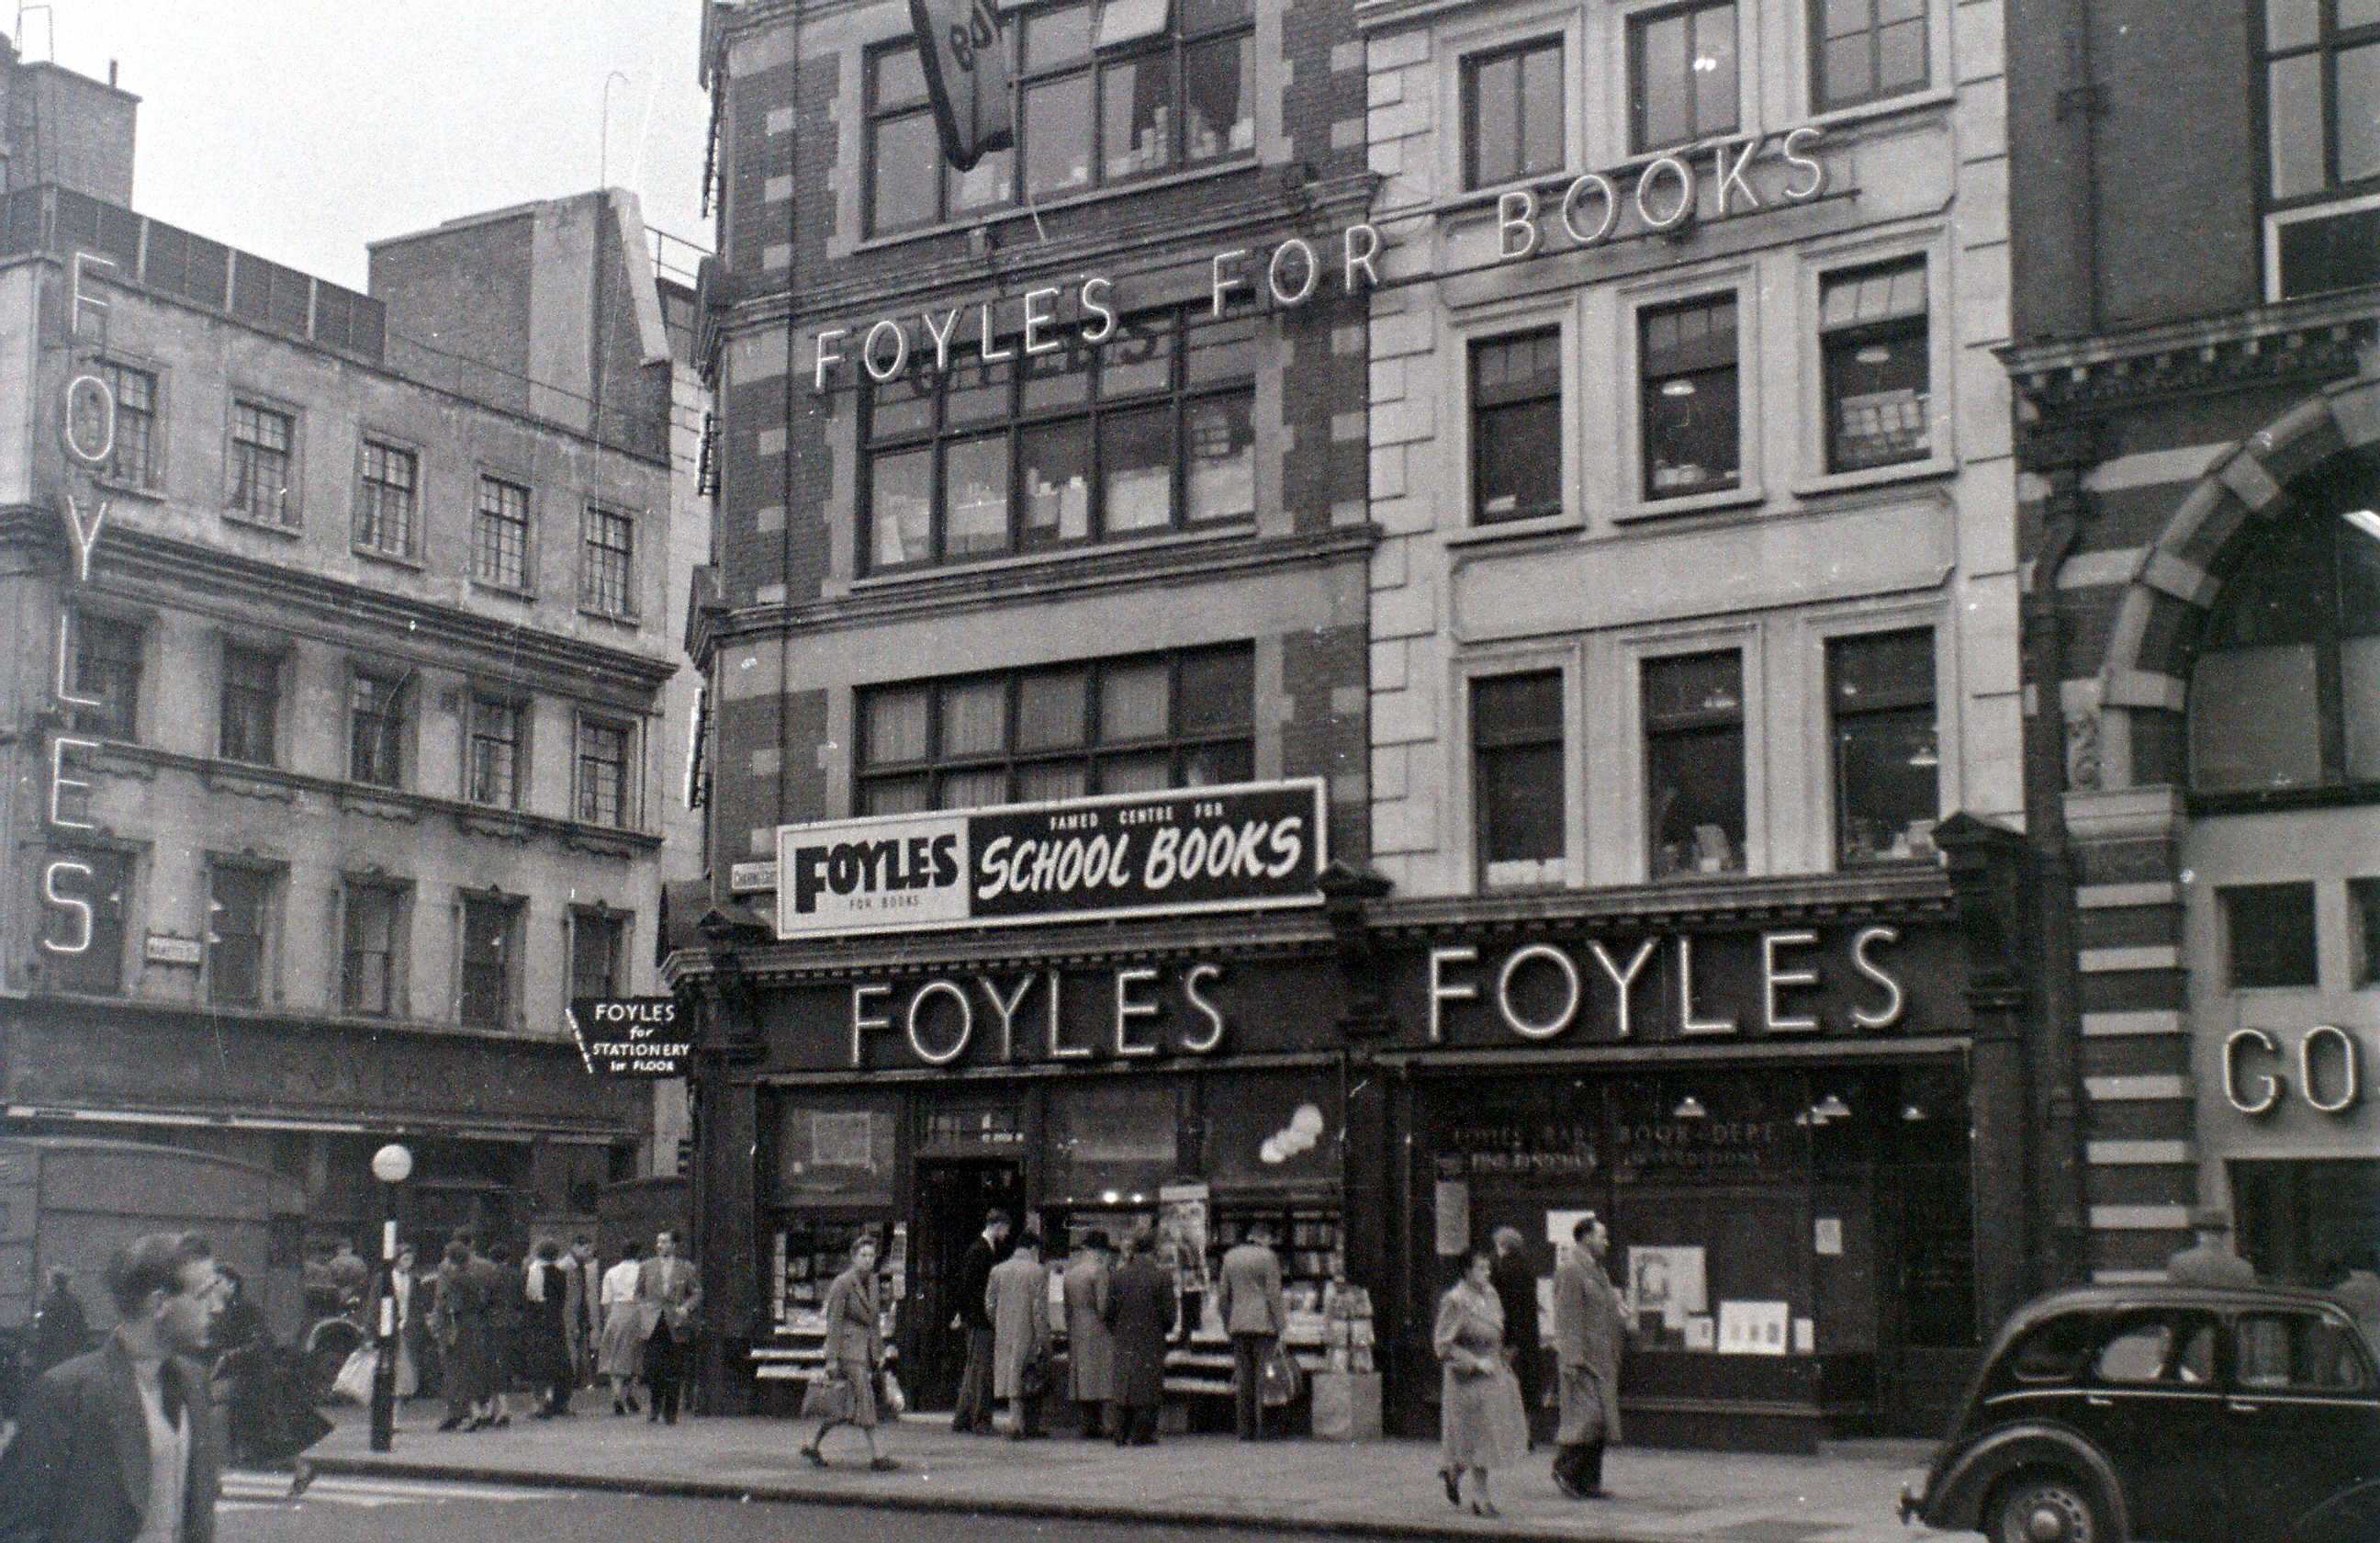 Foyle's Bookshop, Charing Cross Road, London, 5 November 1955